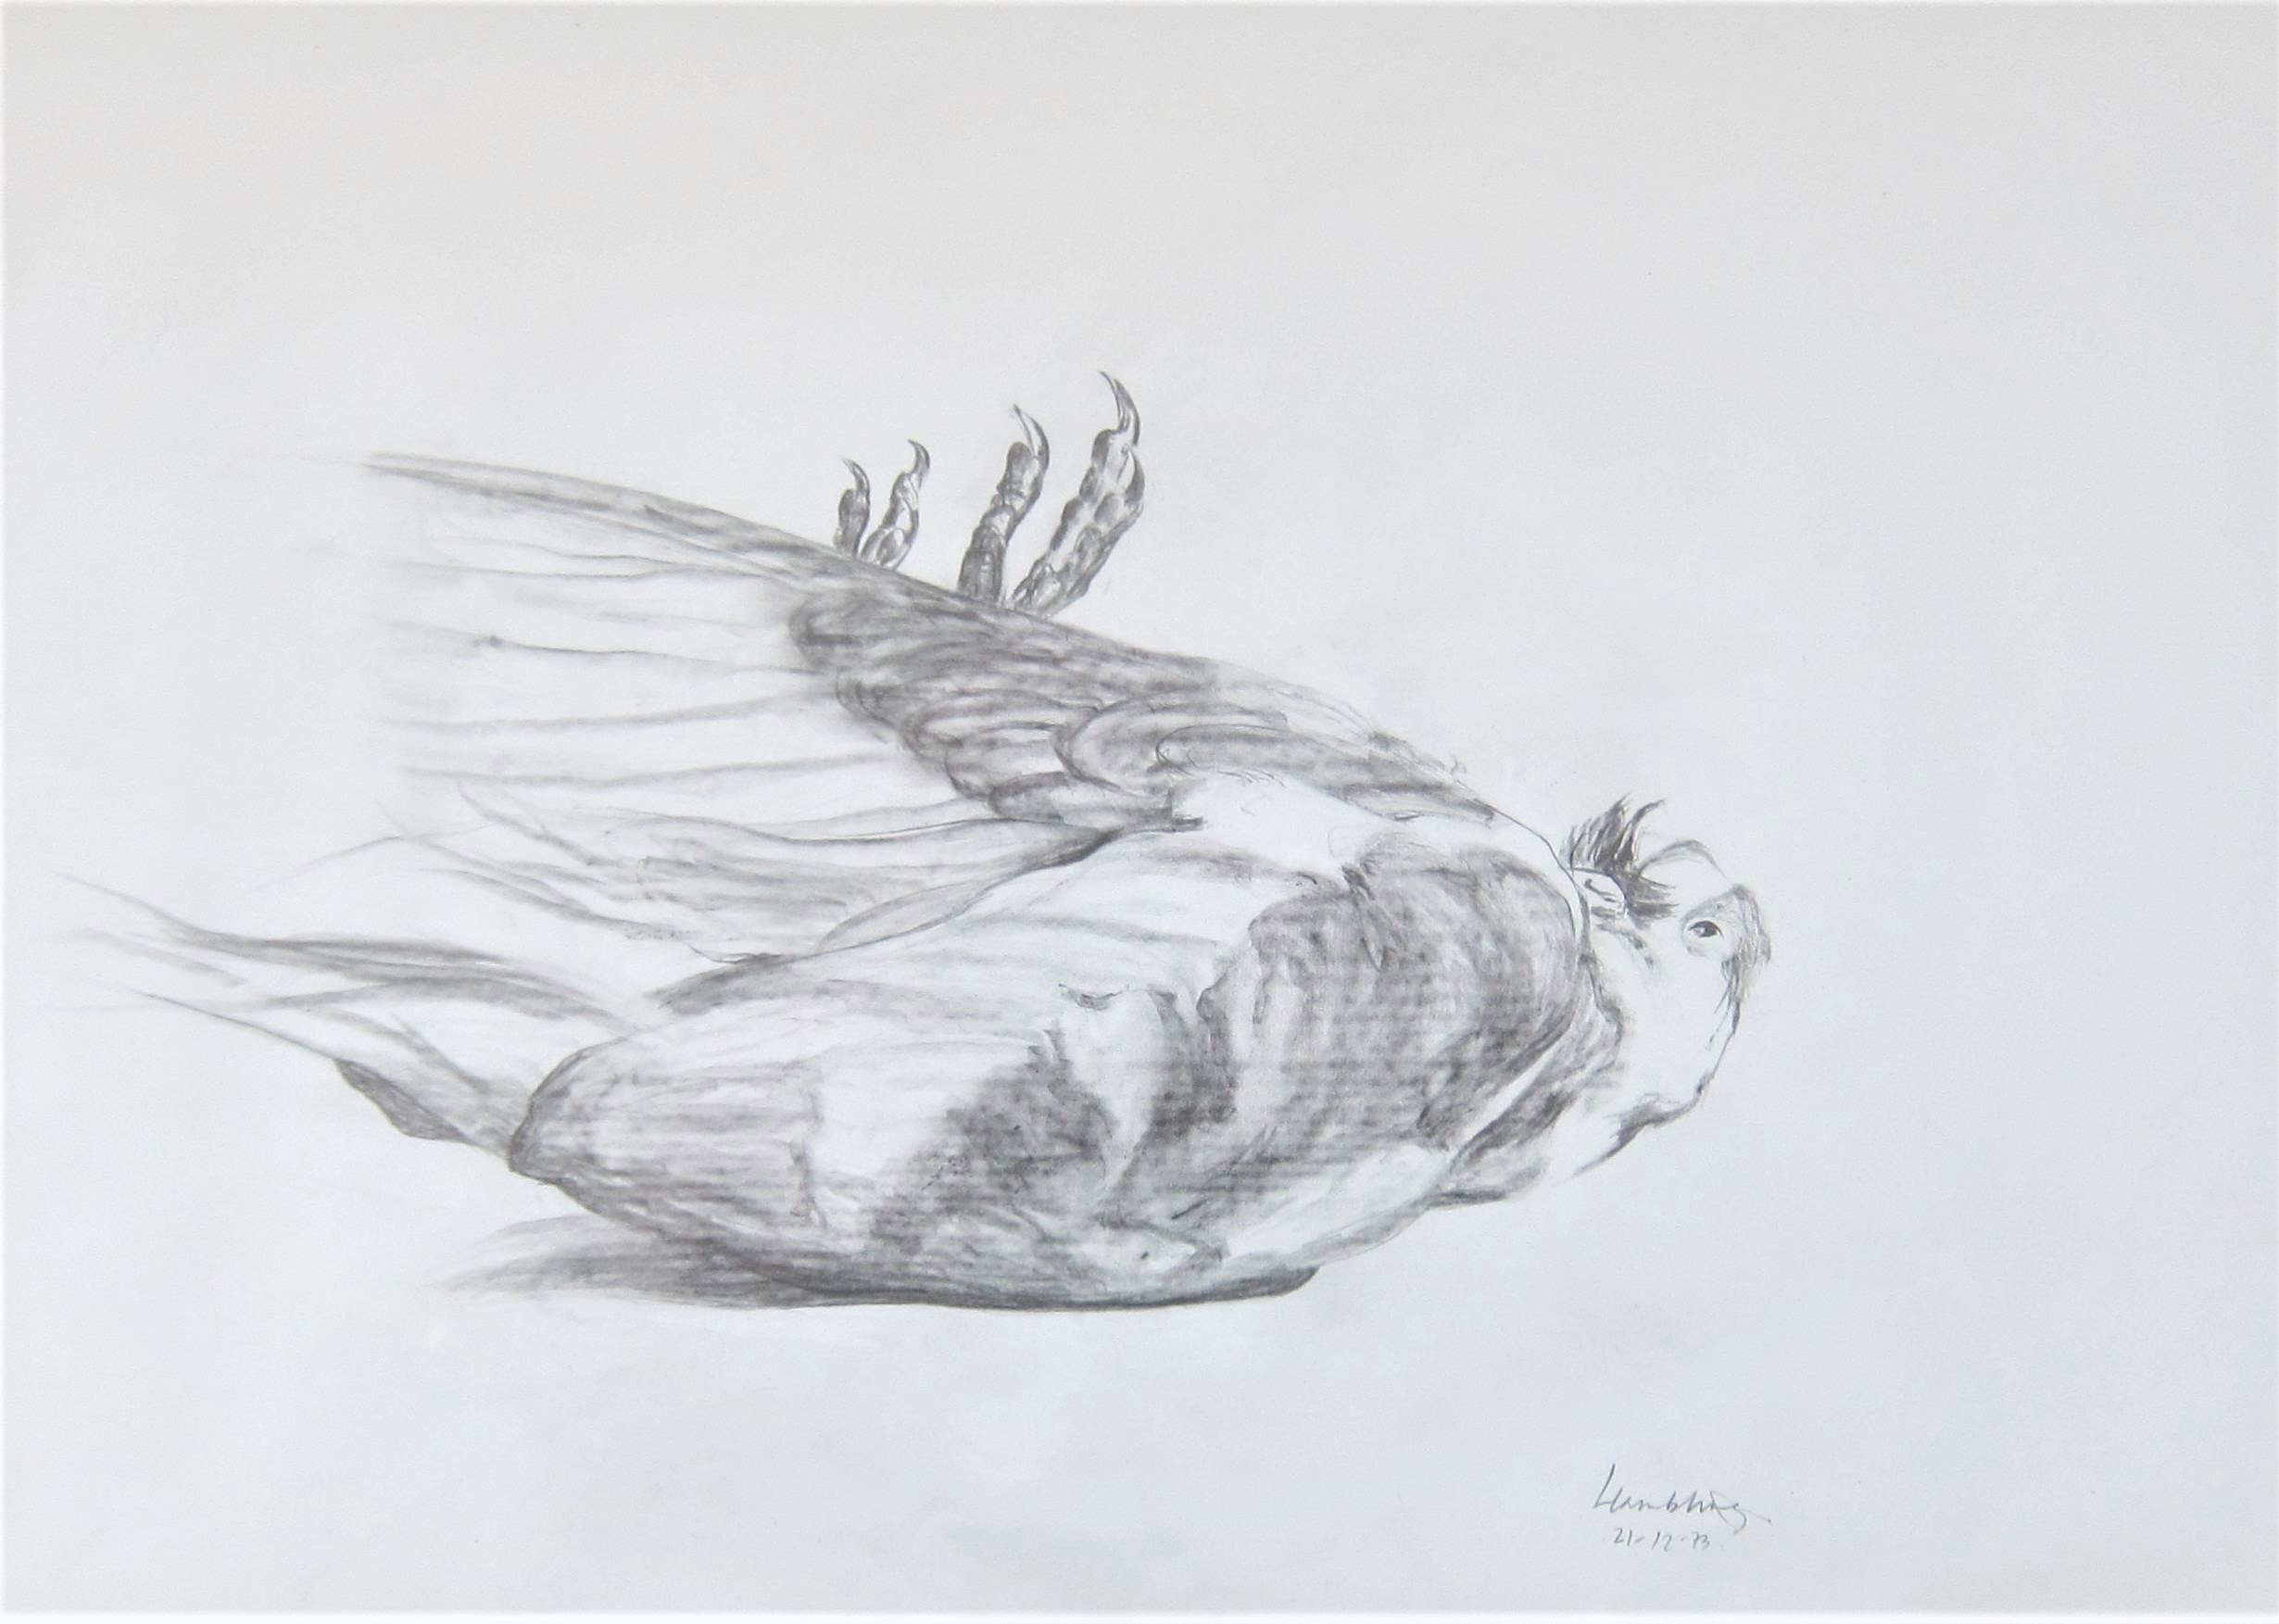 MAGGI HAMBLING C.B.E. [1945 - ]. Pigeon, Suffolk, 1973. pencil on paper; signed and dated in pencil.